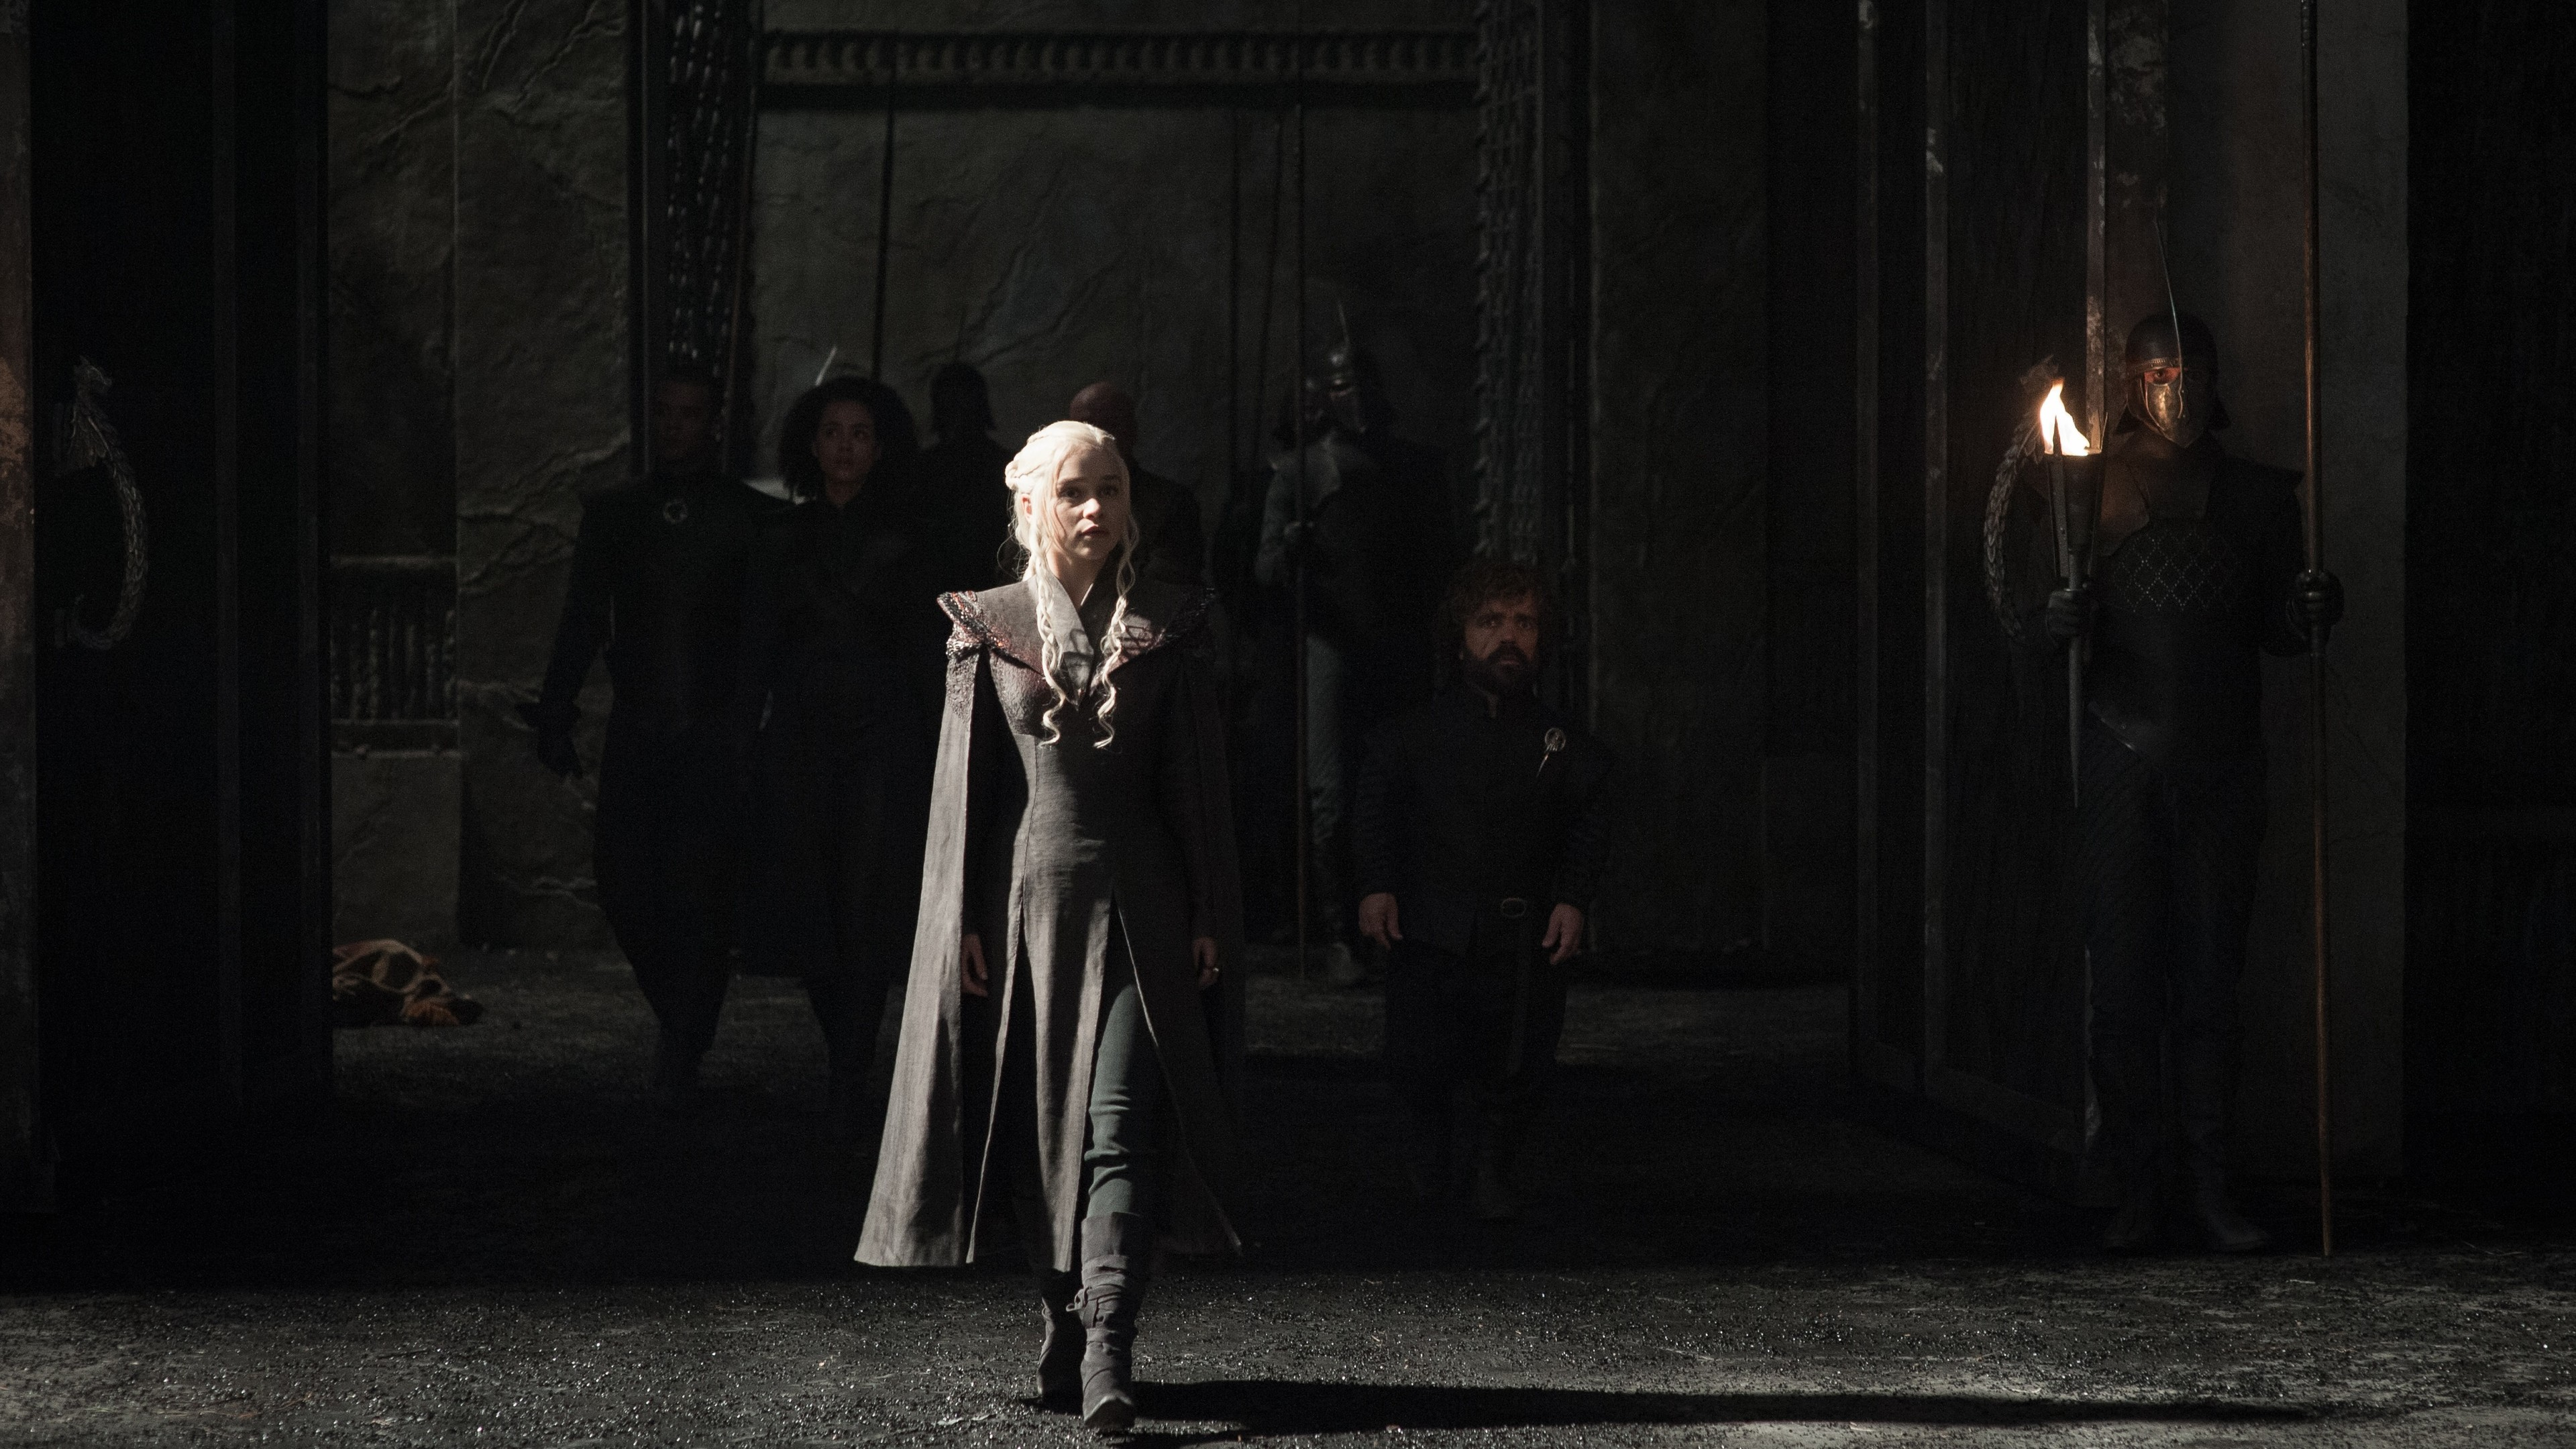 game of thrones season 7 emilia clarke as daenerys 1536859073 - Game Of Thrones Season 7 Emilia Clarke As Daenerys - tv shows wallpapers, hd-wallpapers, game of thrones wallpapers, game of thrones season 7 wallpapers, emilia clarke wallpapers, daenerys targaryen wallpapers, 4k-wallpapers